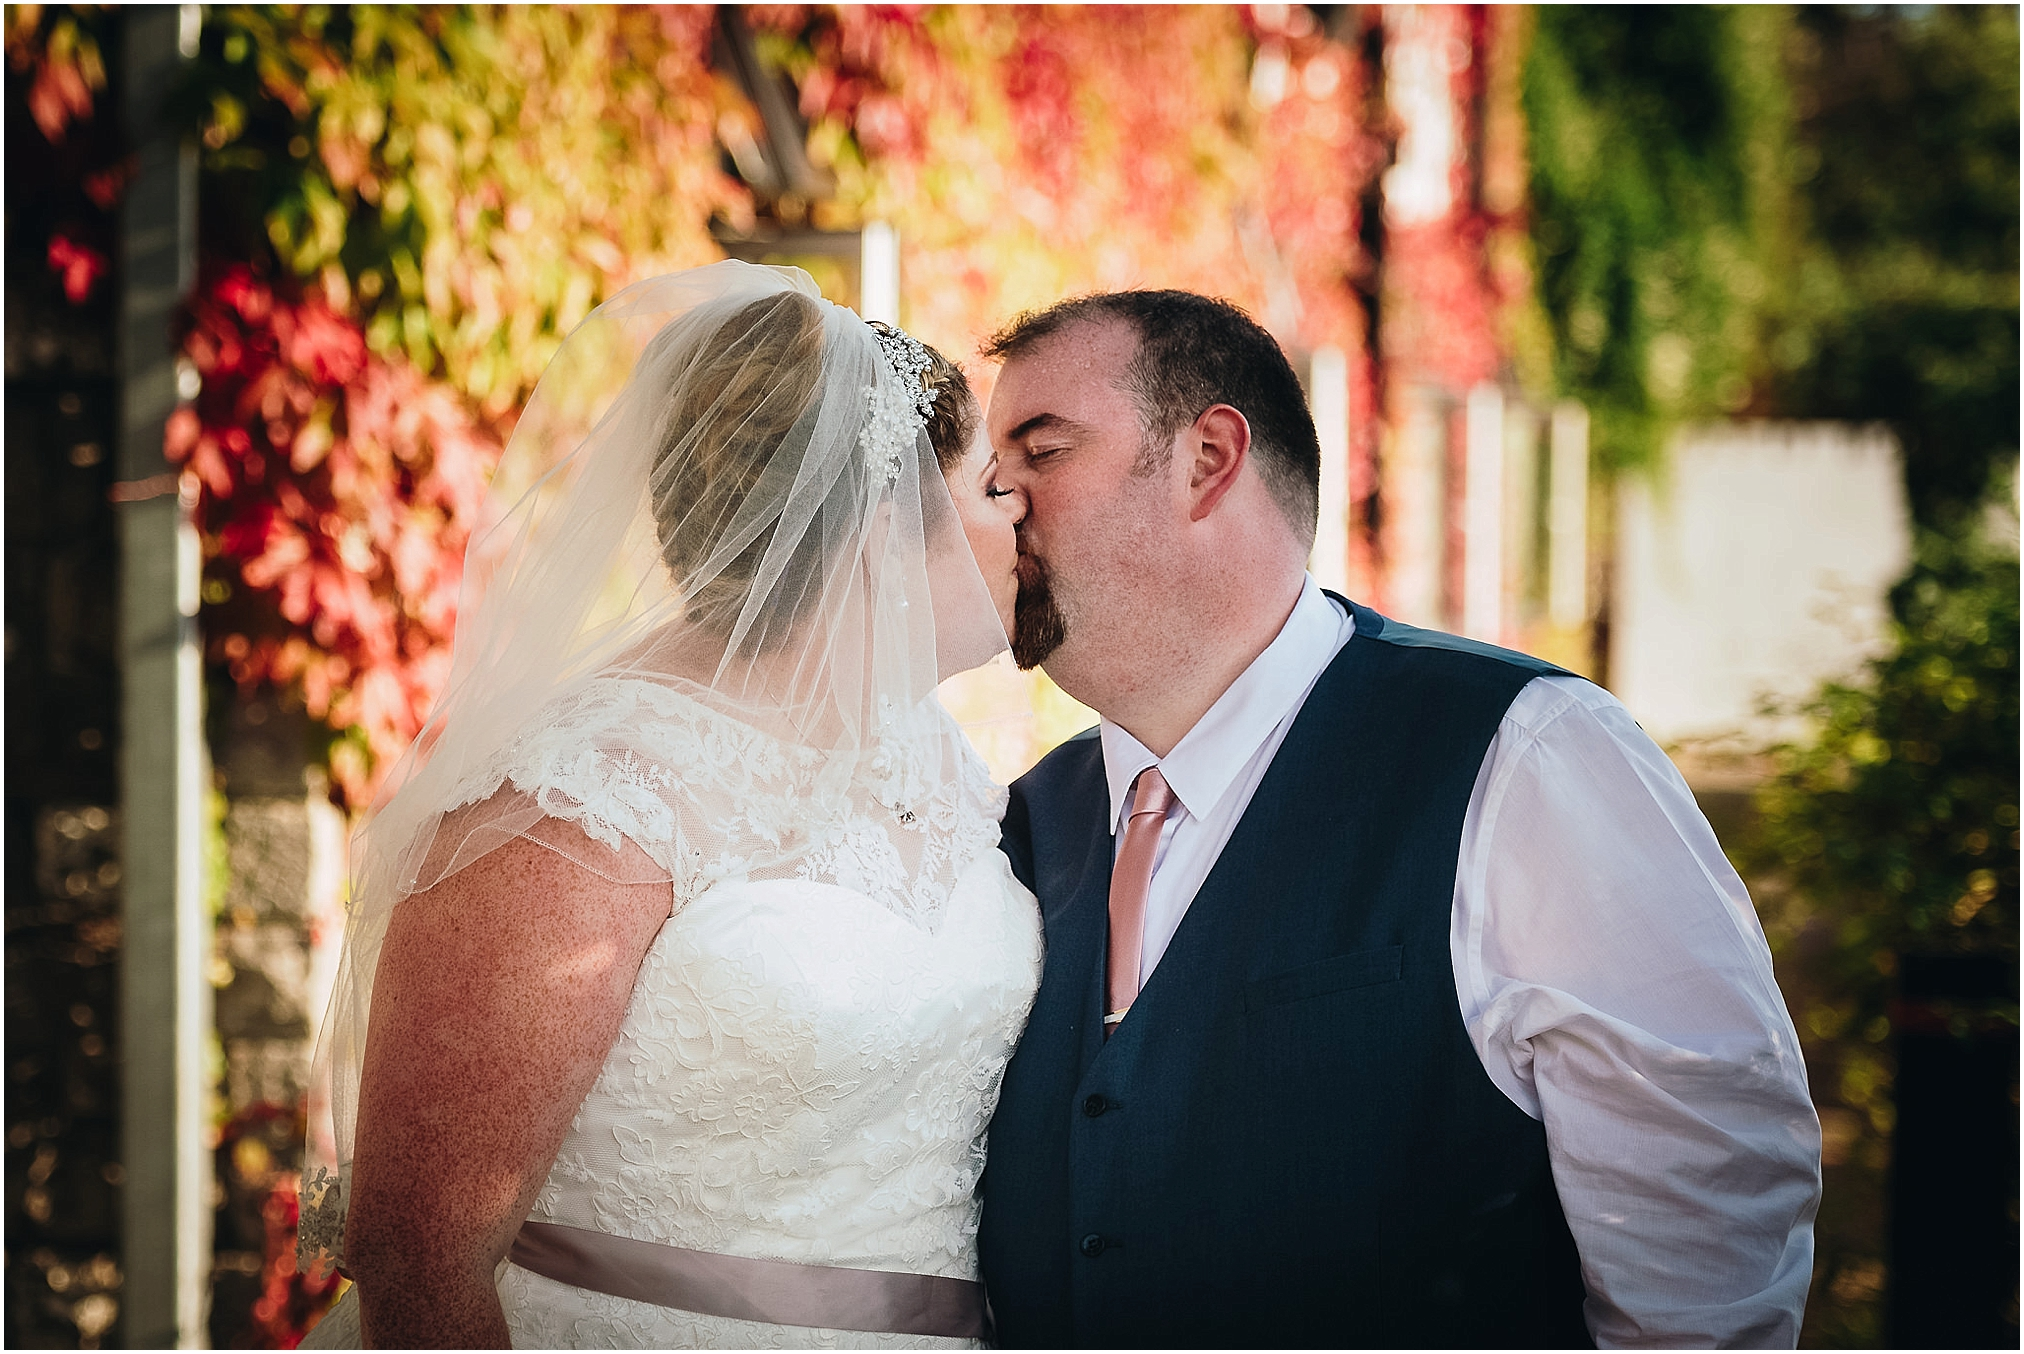 Staffordshire_wedding_photographer-122.jpg